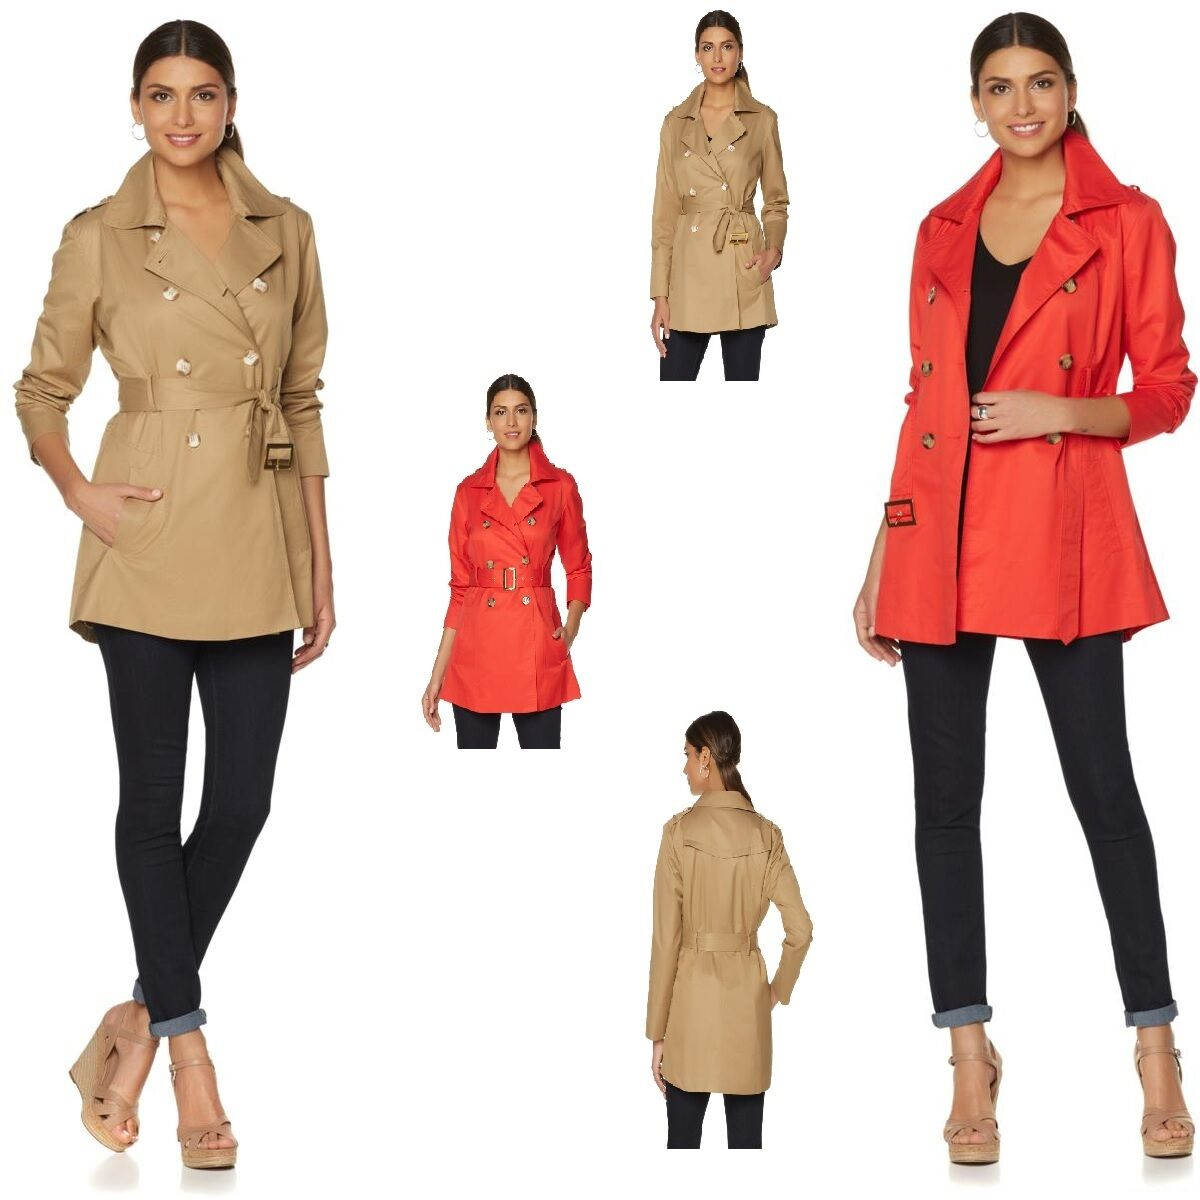 149.99 Samantha Brown All-Weather Trench Coat 488561J (Plus, Aurora Red)  59.99